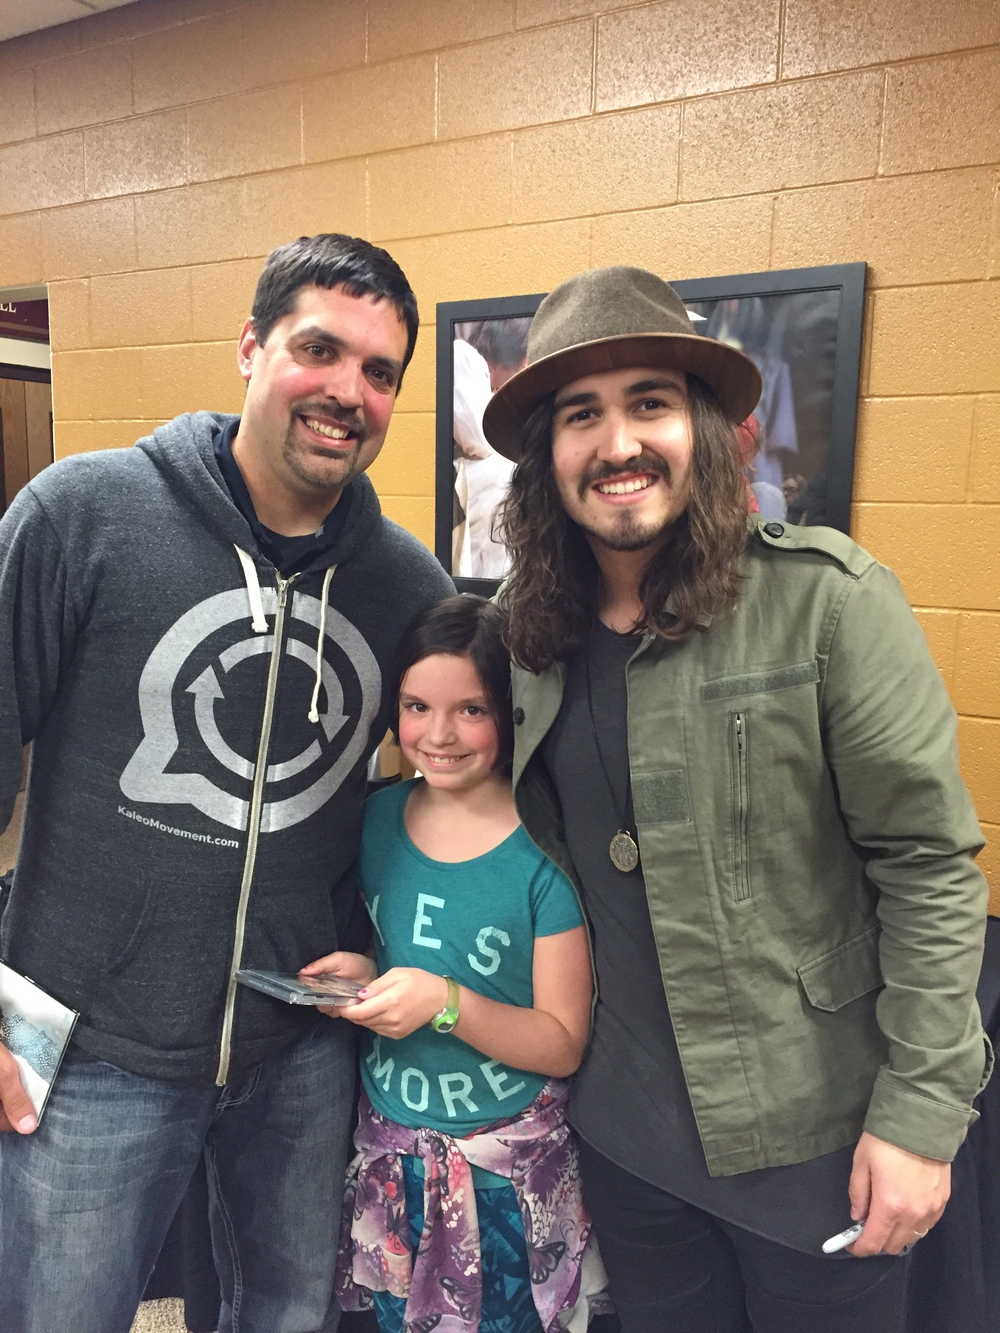 Me and CJ enjoying a photo op with Jordan Feliz!